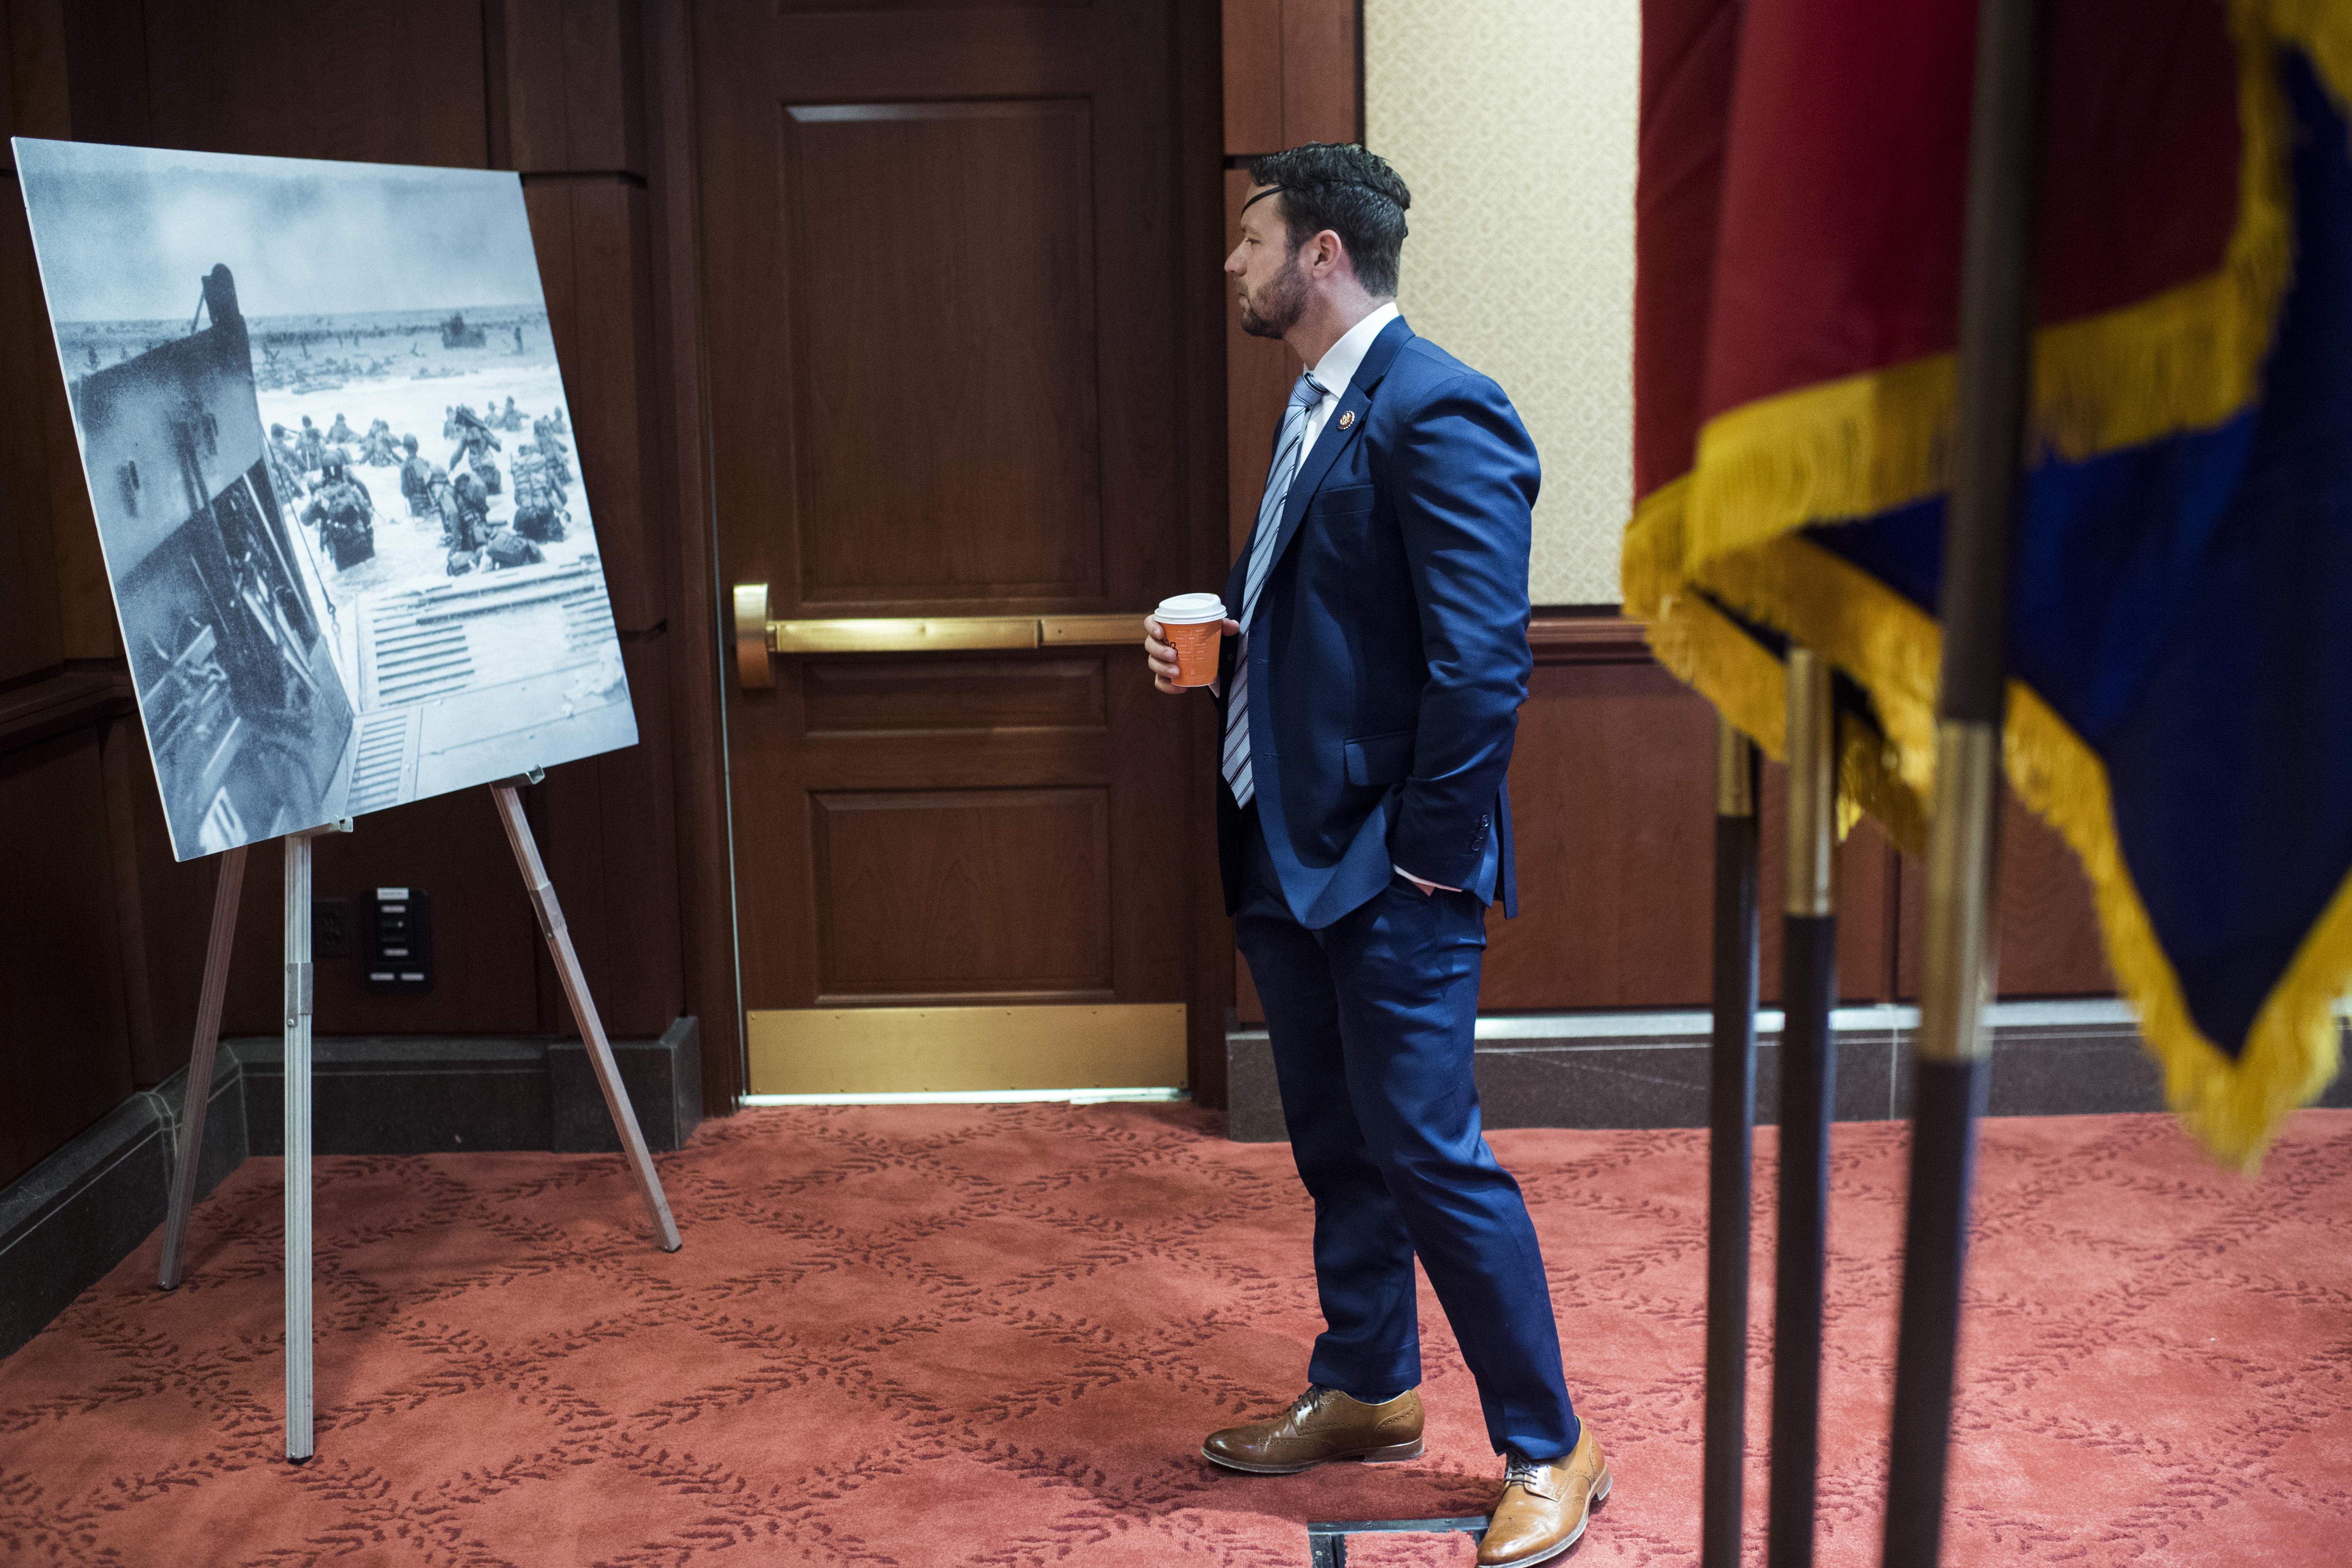 UNITED STATES - JUNE 4: Rep. Dan Crenshaw, R-Texas, looks at a picture of the Normandy landings during an event with the U.S. Holocaust Memorial Museum to honor the 75th anniversary of D-Day in the Capitol Visitor Center on Tuesday, June 4, 2019. (Photo By Tom Williams/CQ Roll Call)